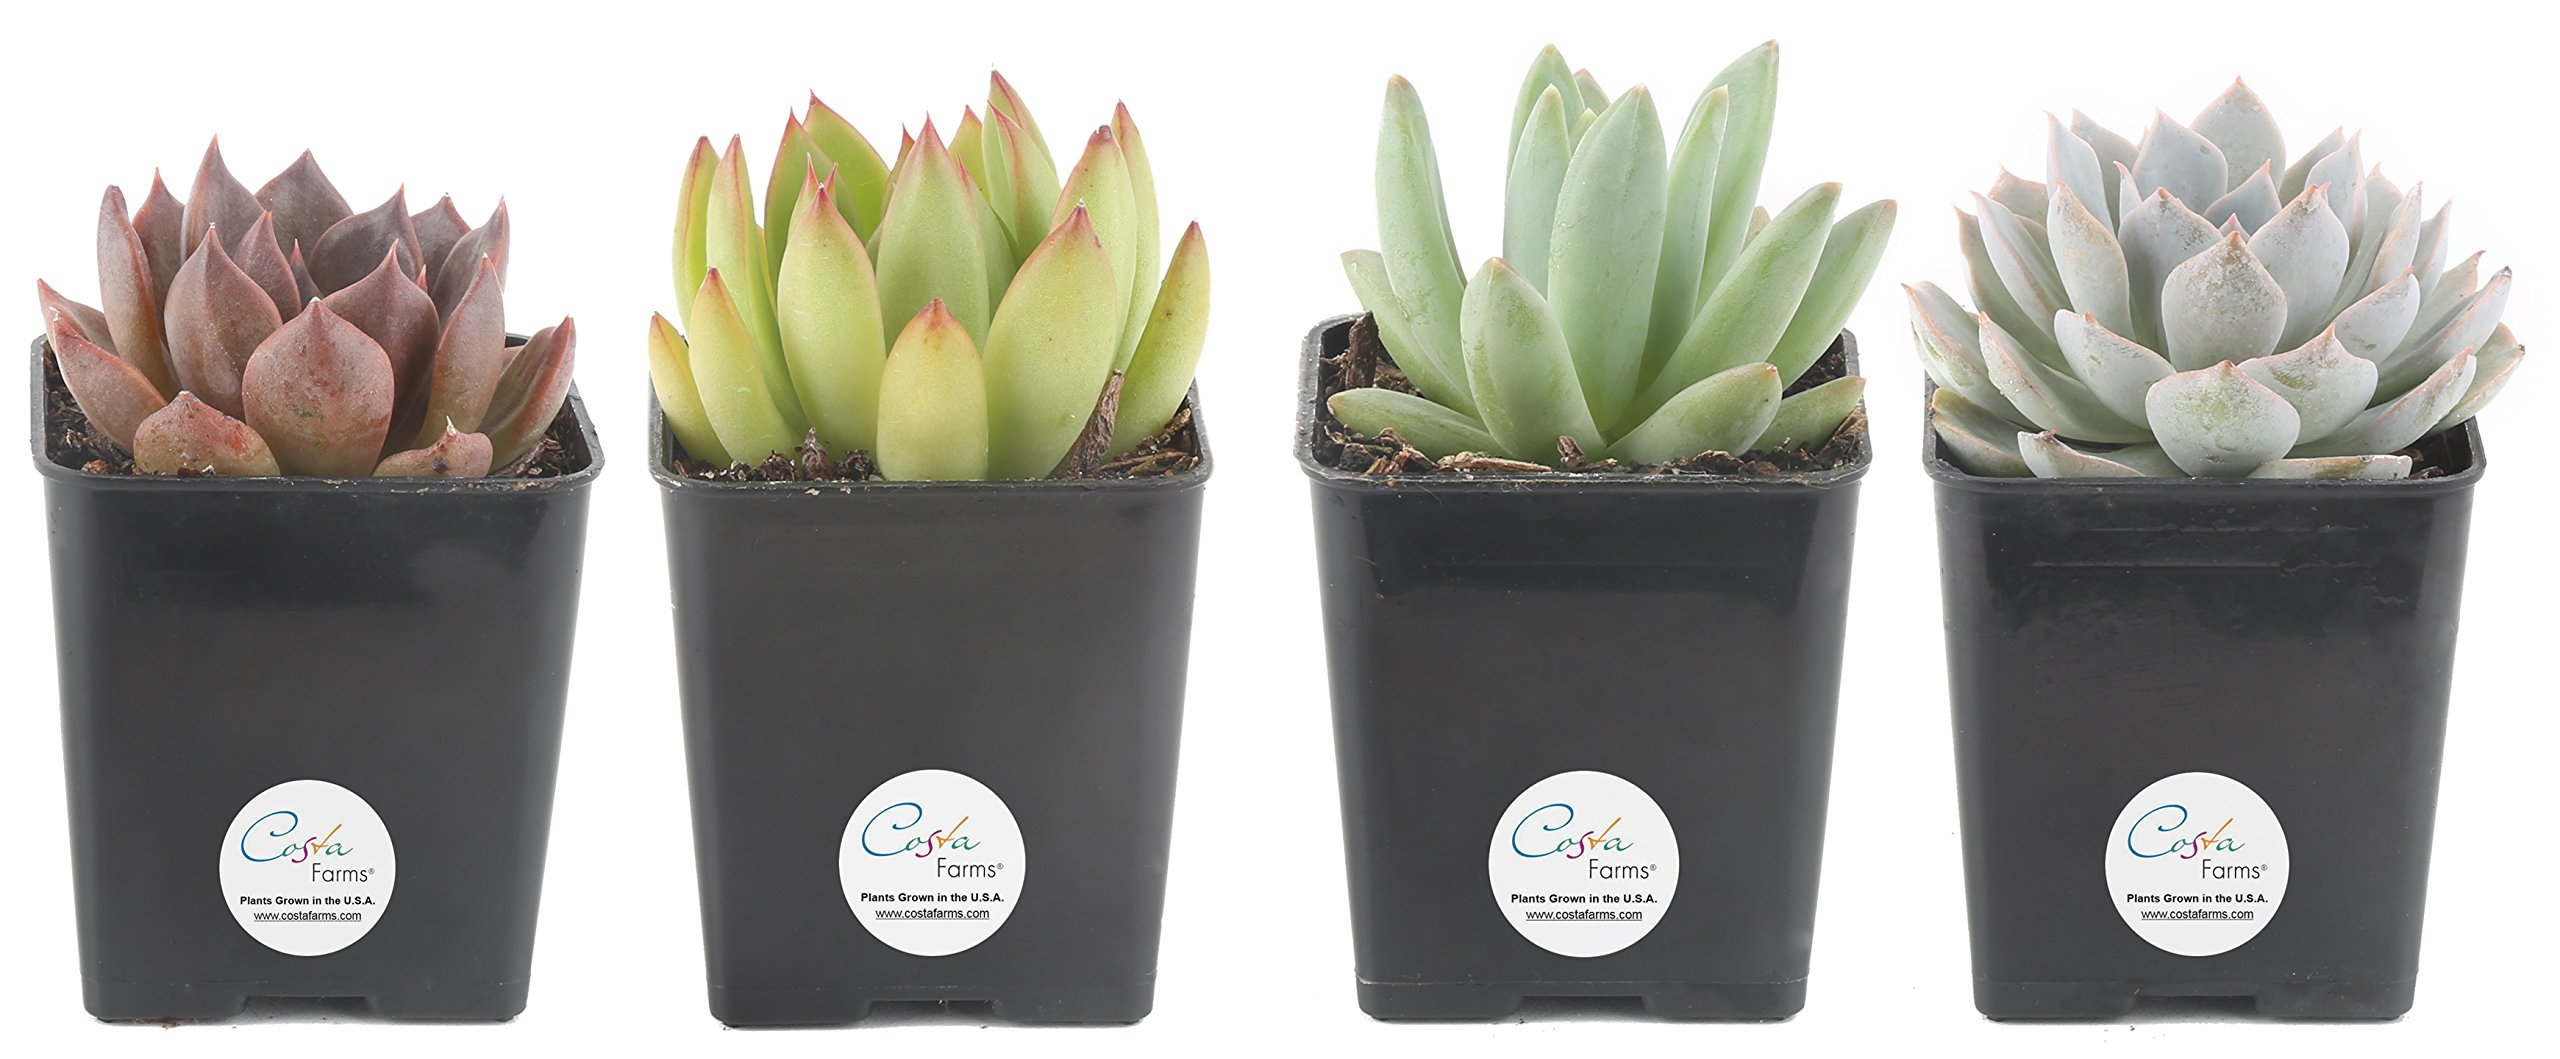 Costa Farms Premium Live Echeveria Succulent Plant, 4 Pack Grower Choice Assortment in 2.5'' Grower Pot